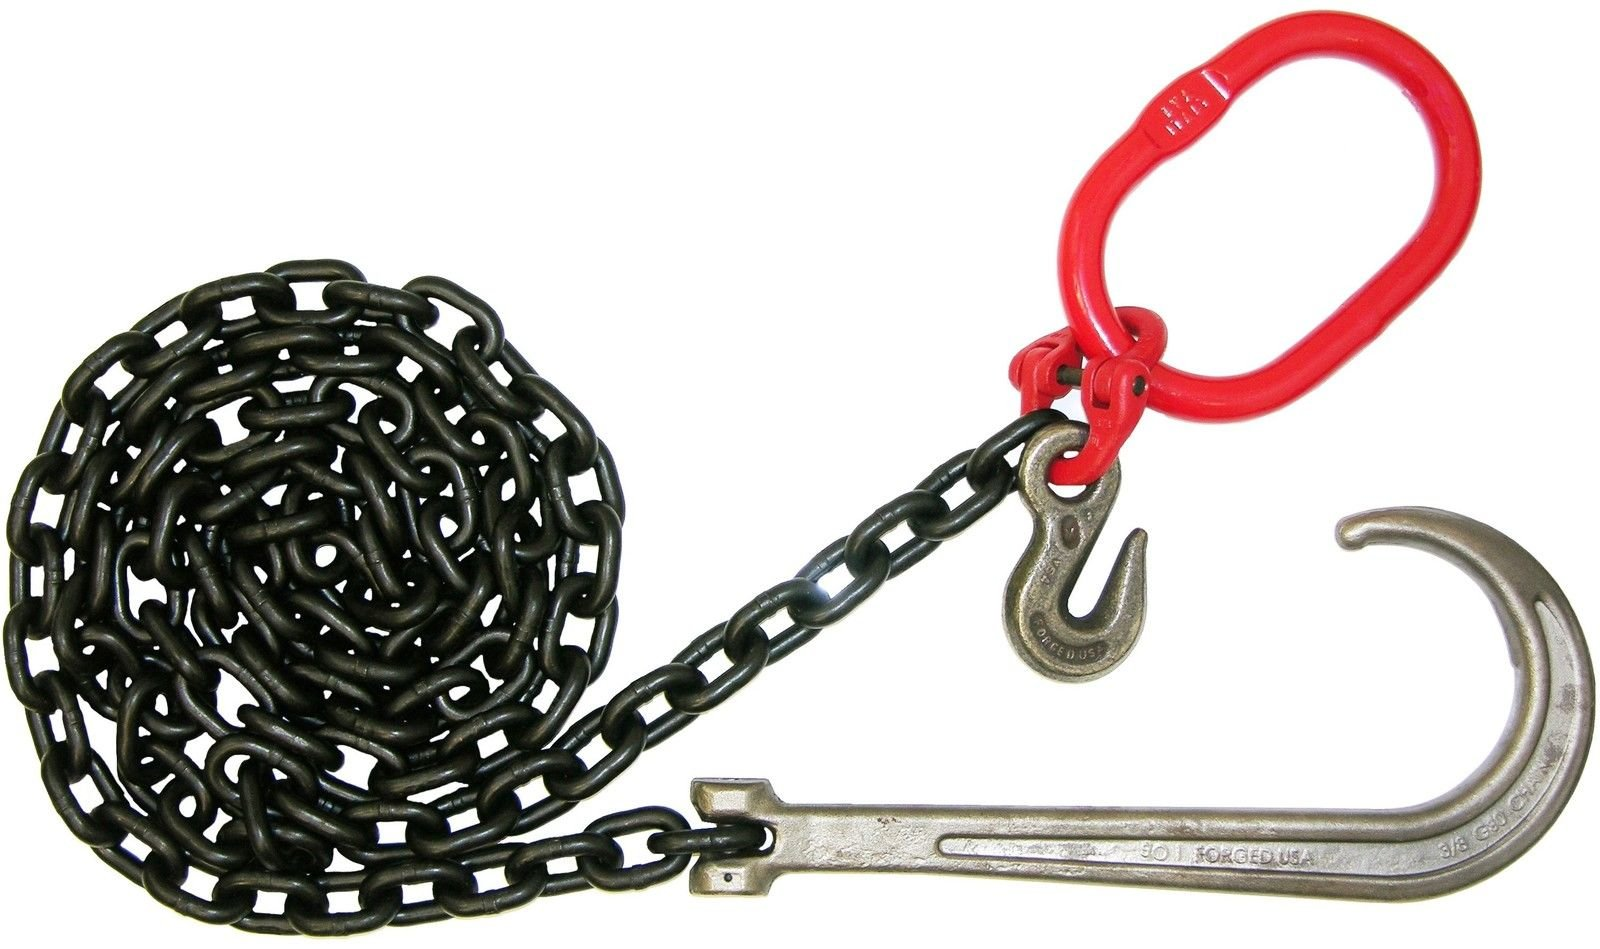 STRONG! BA Products G8-3810JOG STRONG! 3/8'' x 10' Grade 80 Chain Assembly, Grade 80 Clevis J & Grab Hook for Wrecker, Rollback, Recovery